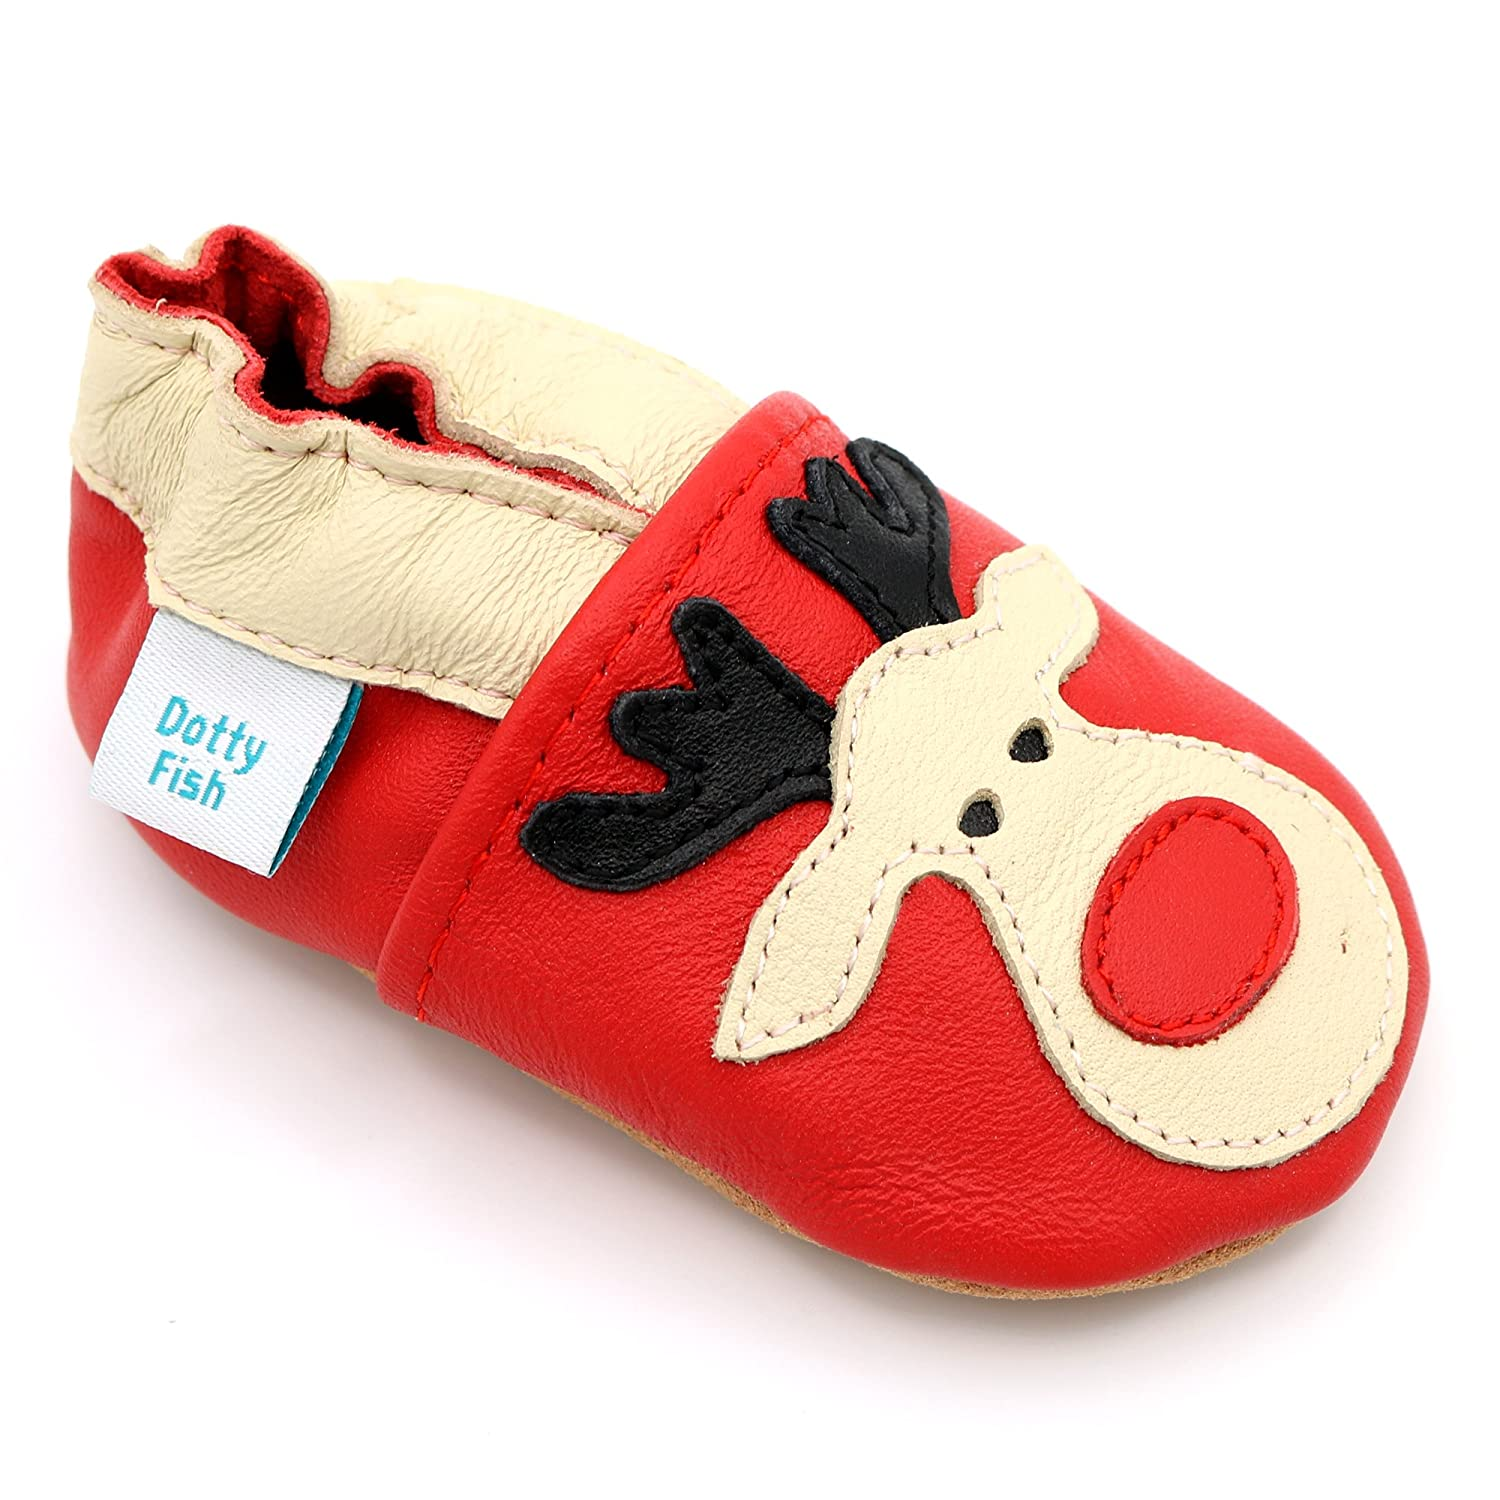 Dotty Fish Soft Leather Baby Shoes. Toddler Shoes. Boys Girls. Non-Slip Suede Soles. Christmas Winter Designs. 0-6 to 3-4 Years FBA-RUDOLPH-P